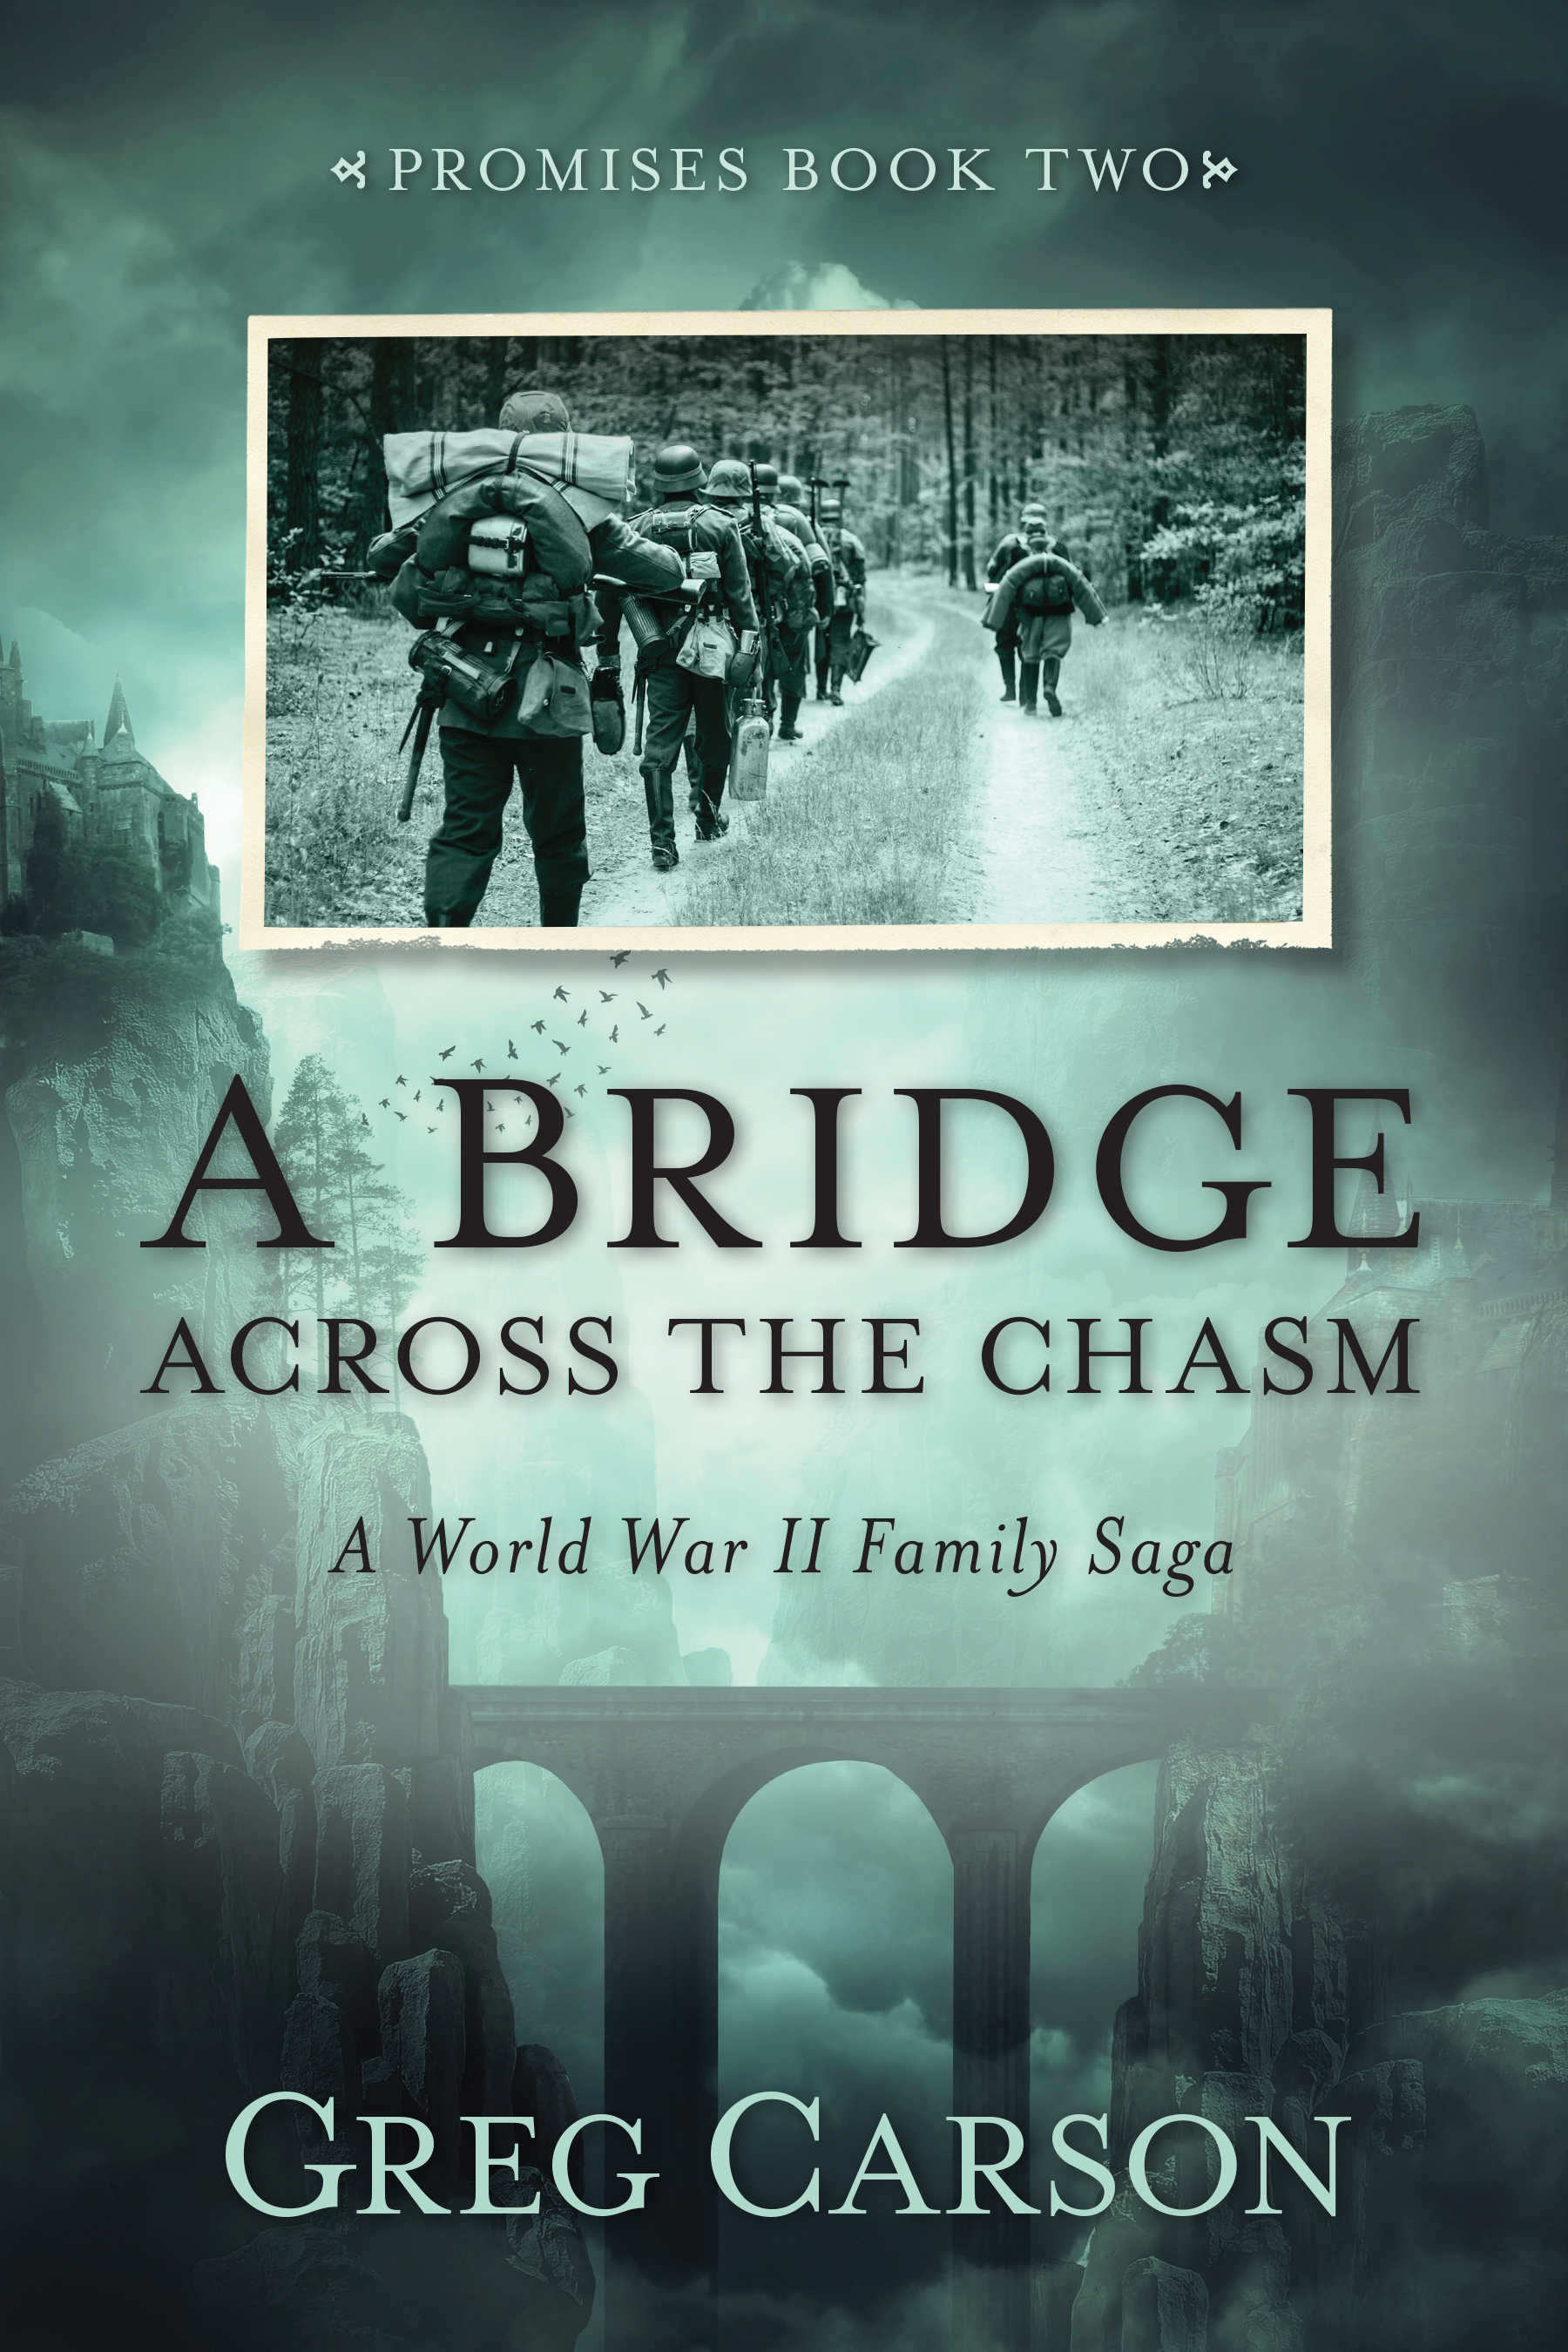 Bridge Across the Chasm